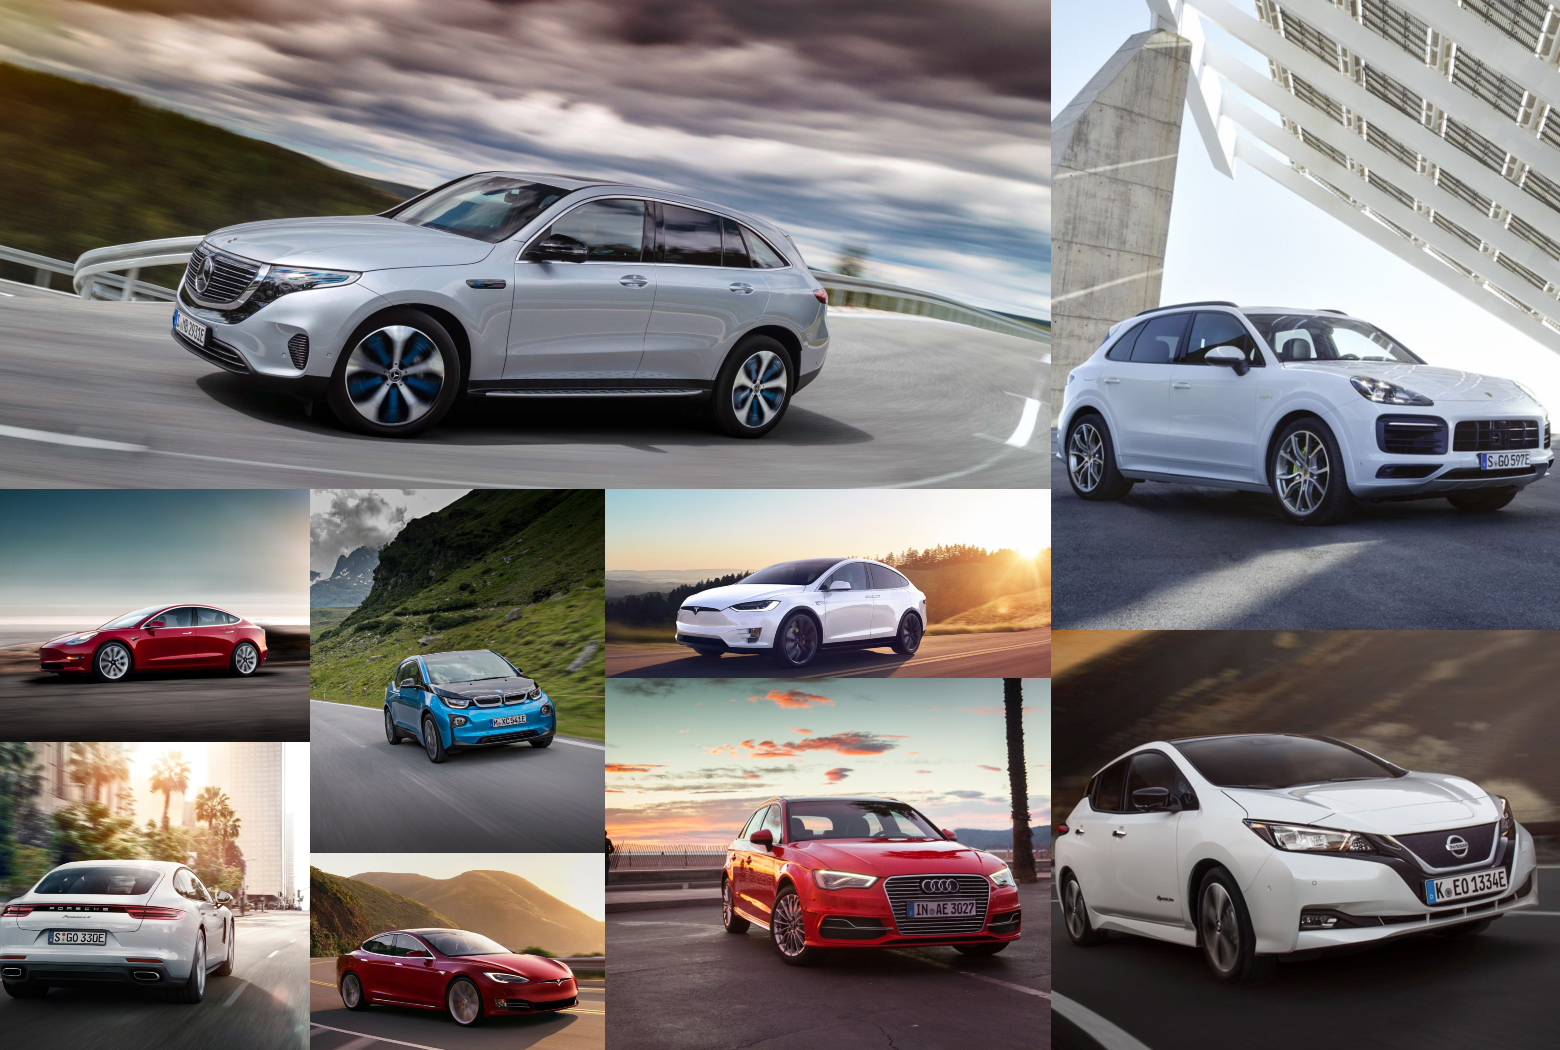 Electric vehicle models - Learn all about different models of EVs in Australia